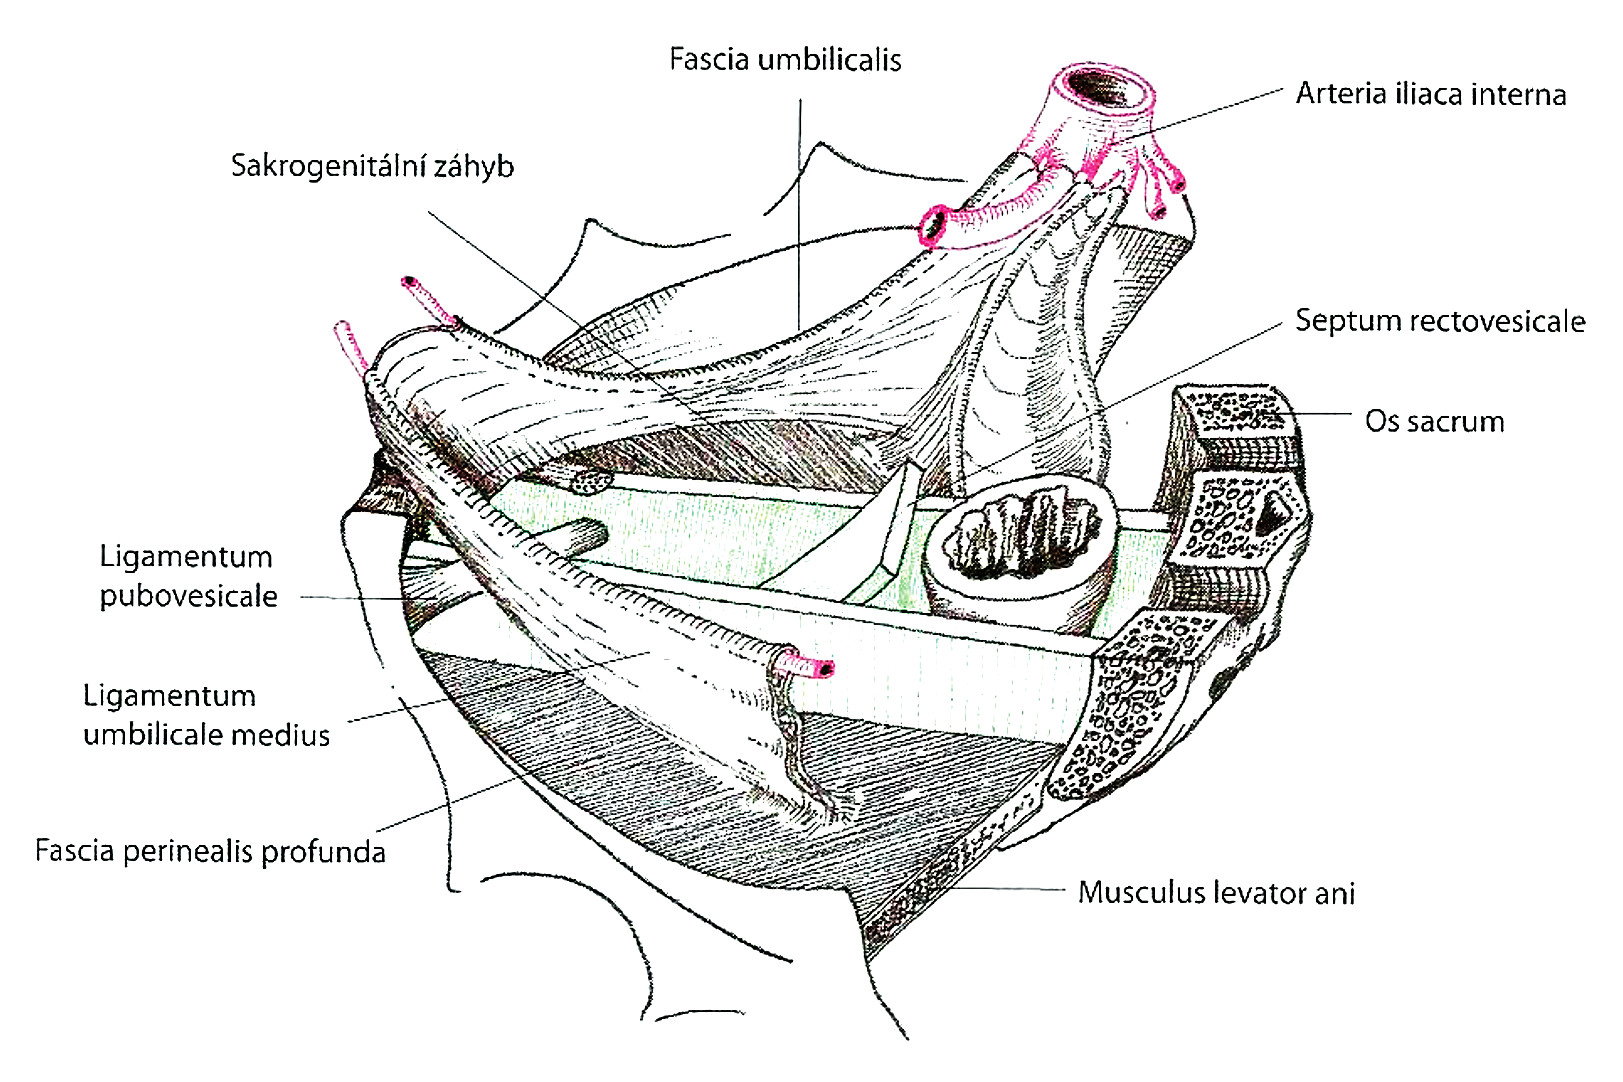 Ligamentum pubovesicale (Paoletti S., 2006).